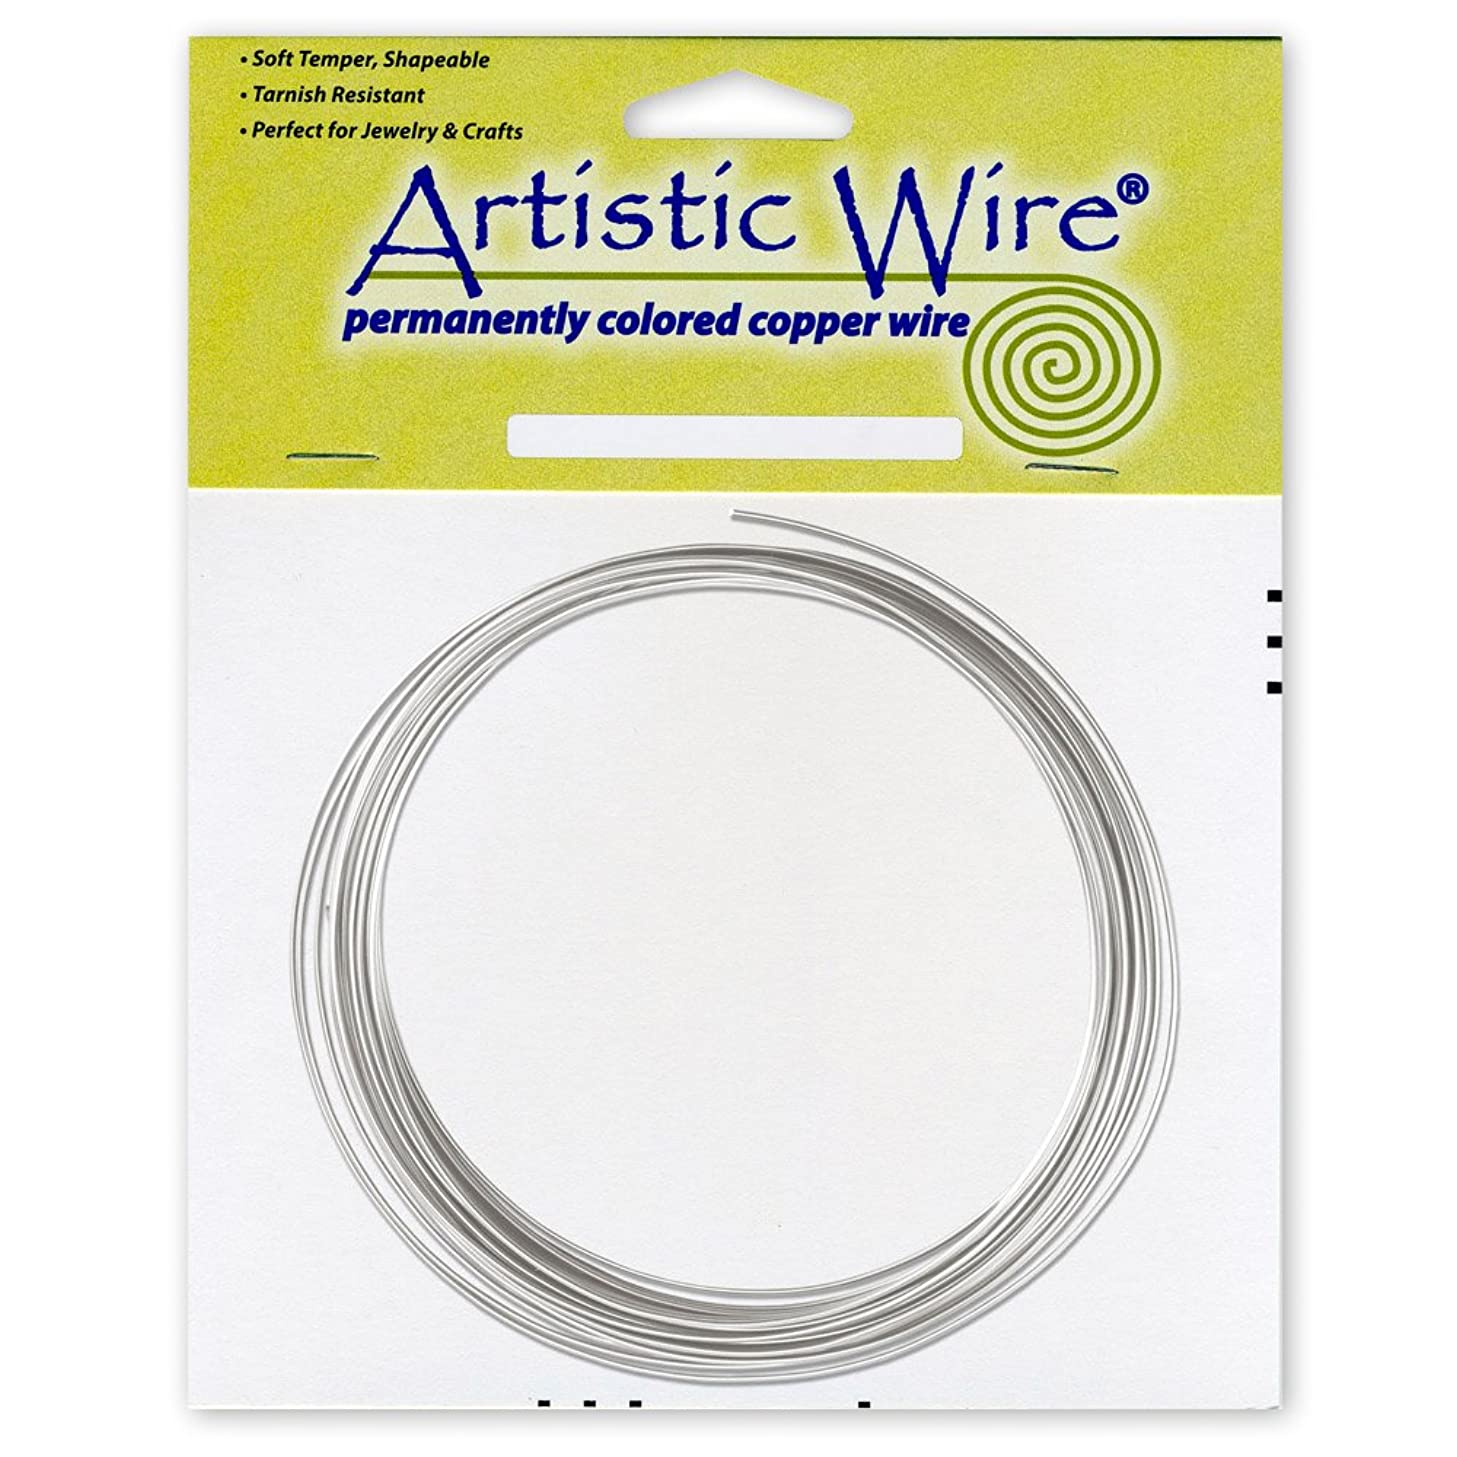 Artistic Wire 12-Gauge Tinned Copper Coil Wire, 25-Feet